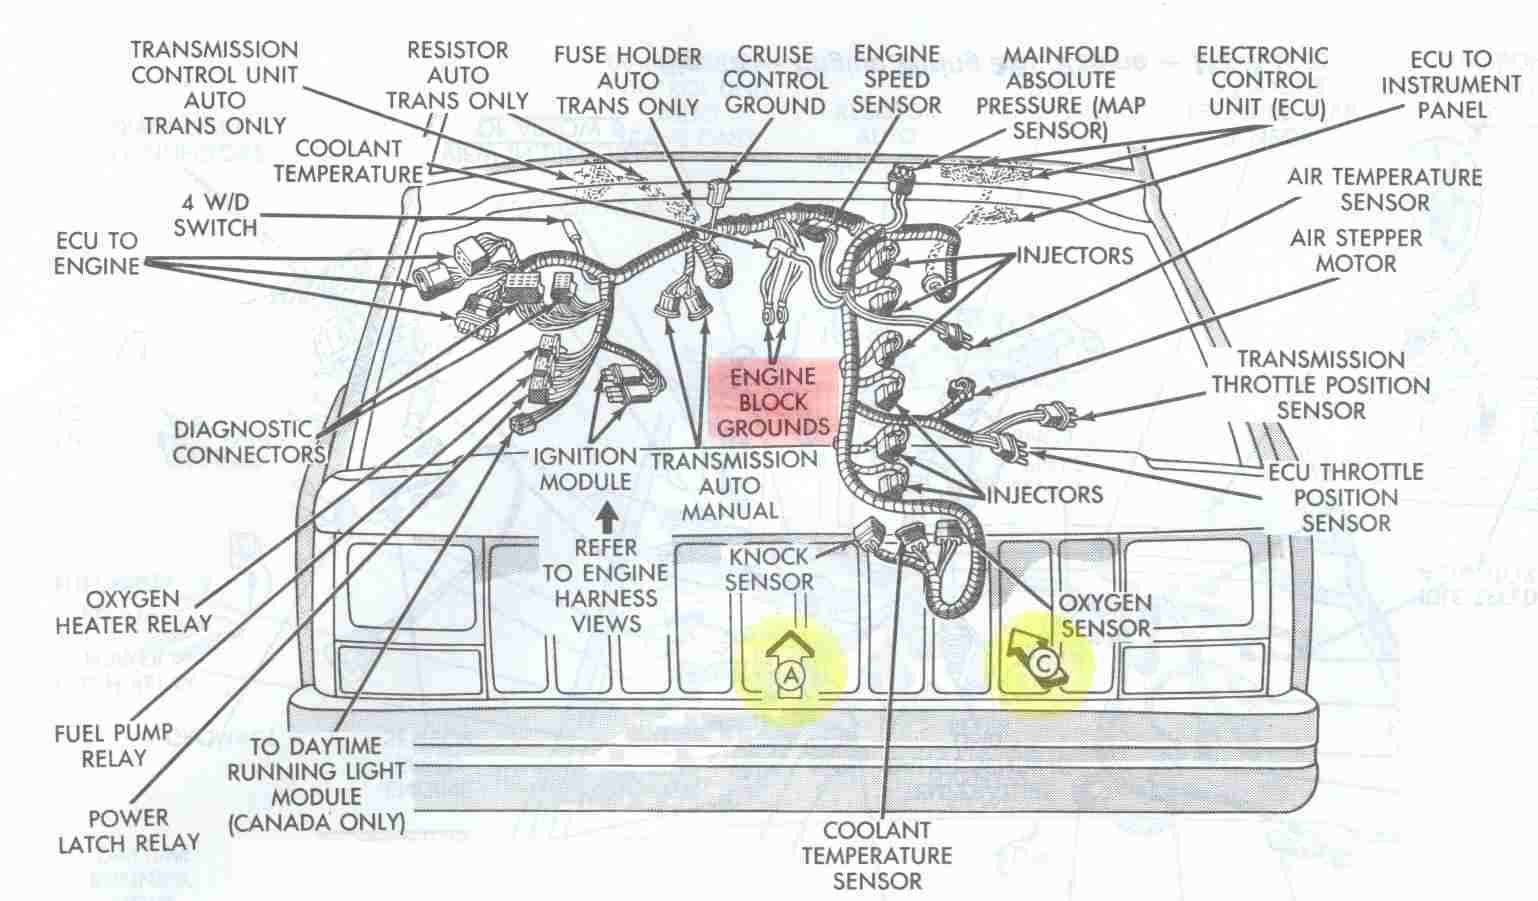 Engine Bay Schematic Showing Major Electrical Ground Points For 40l 1993 Chrysler New Yorker Mini Fuse Box Diagram Jeep Cherokee Engines